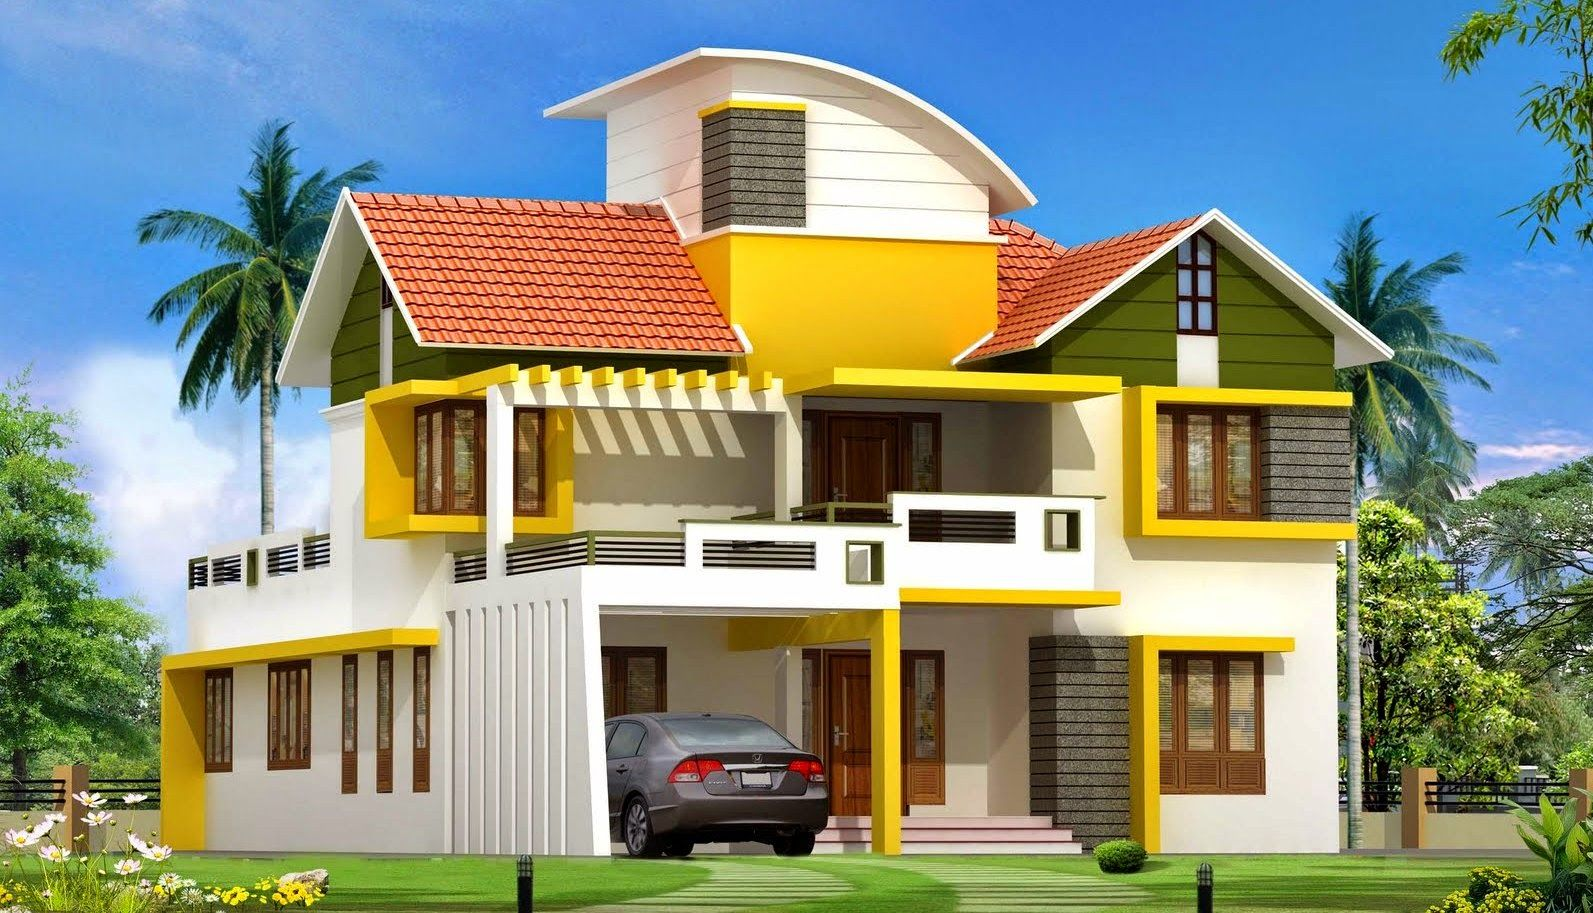 Kerala Home Design New Modern Houses Home Interior Design Trends. Www Modern Home Interior Design. Home Interior Decor Ideas Part 4 Decorating Home Idea Interior. Pre War Shophouse in Singapore Transformed Into Luxury Modern Home